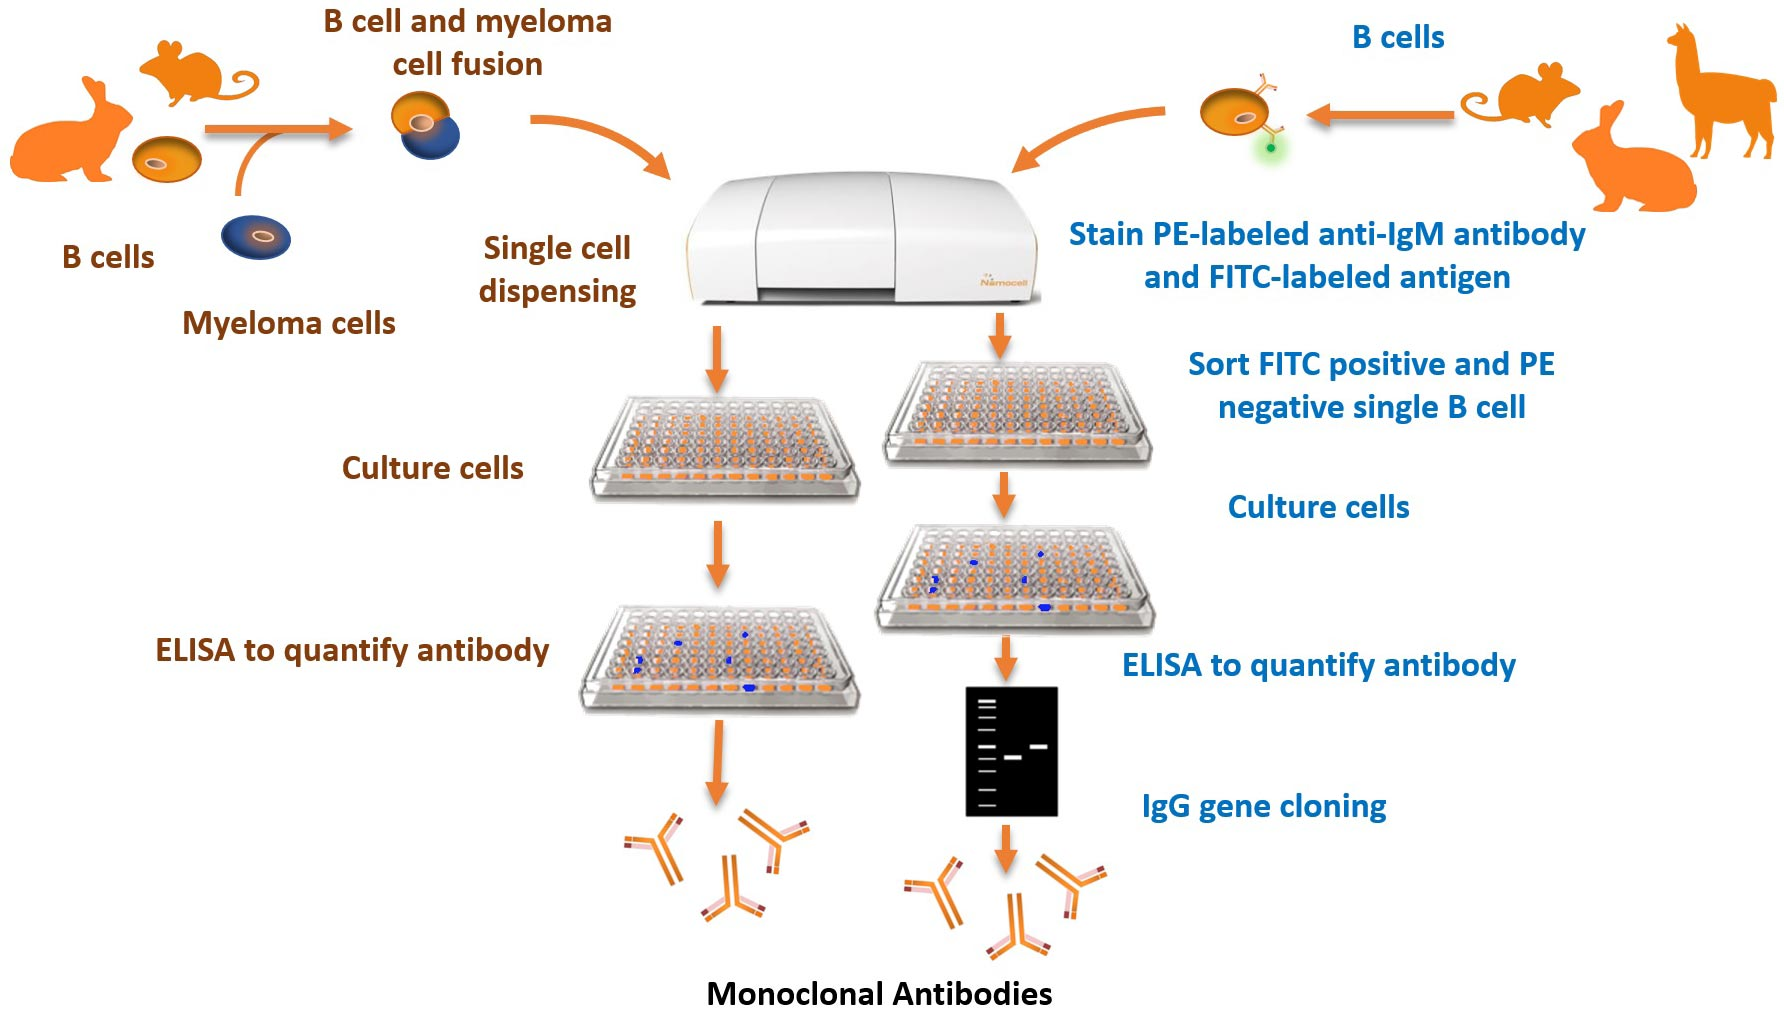 application of monoclonal and polyclonal antibodies